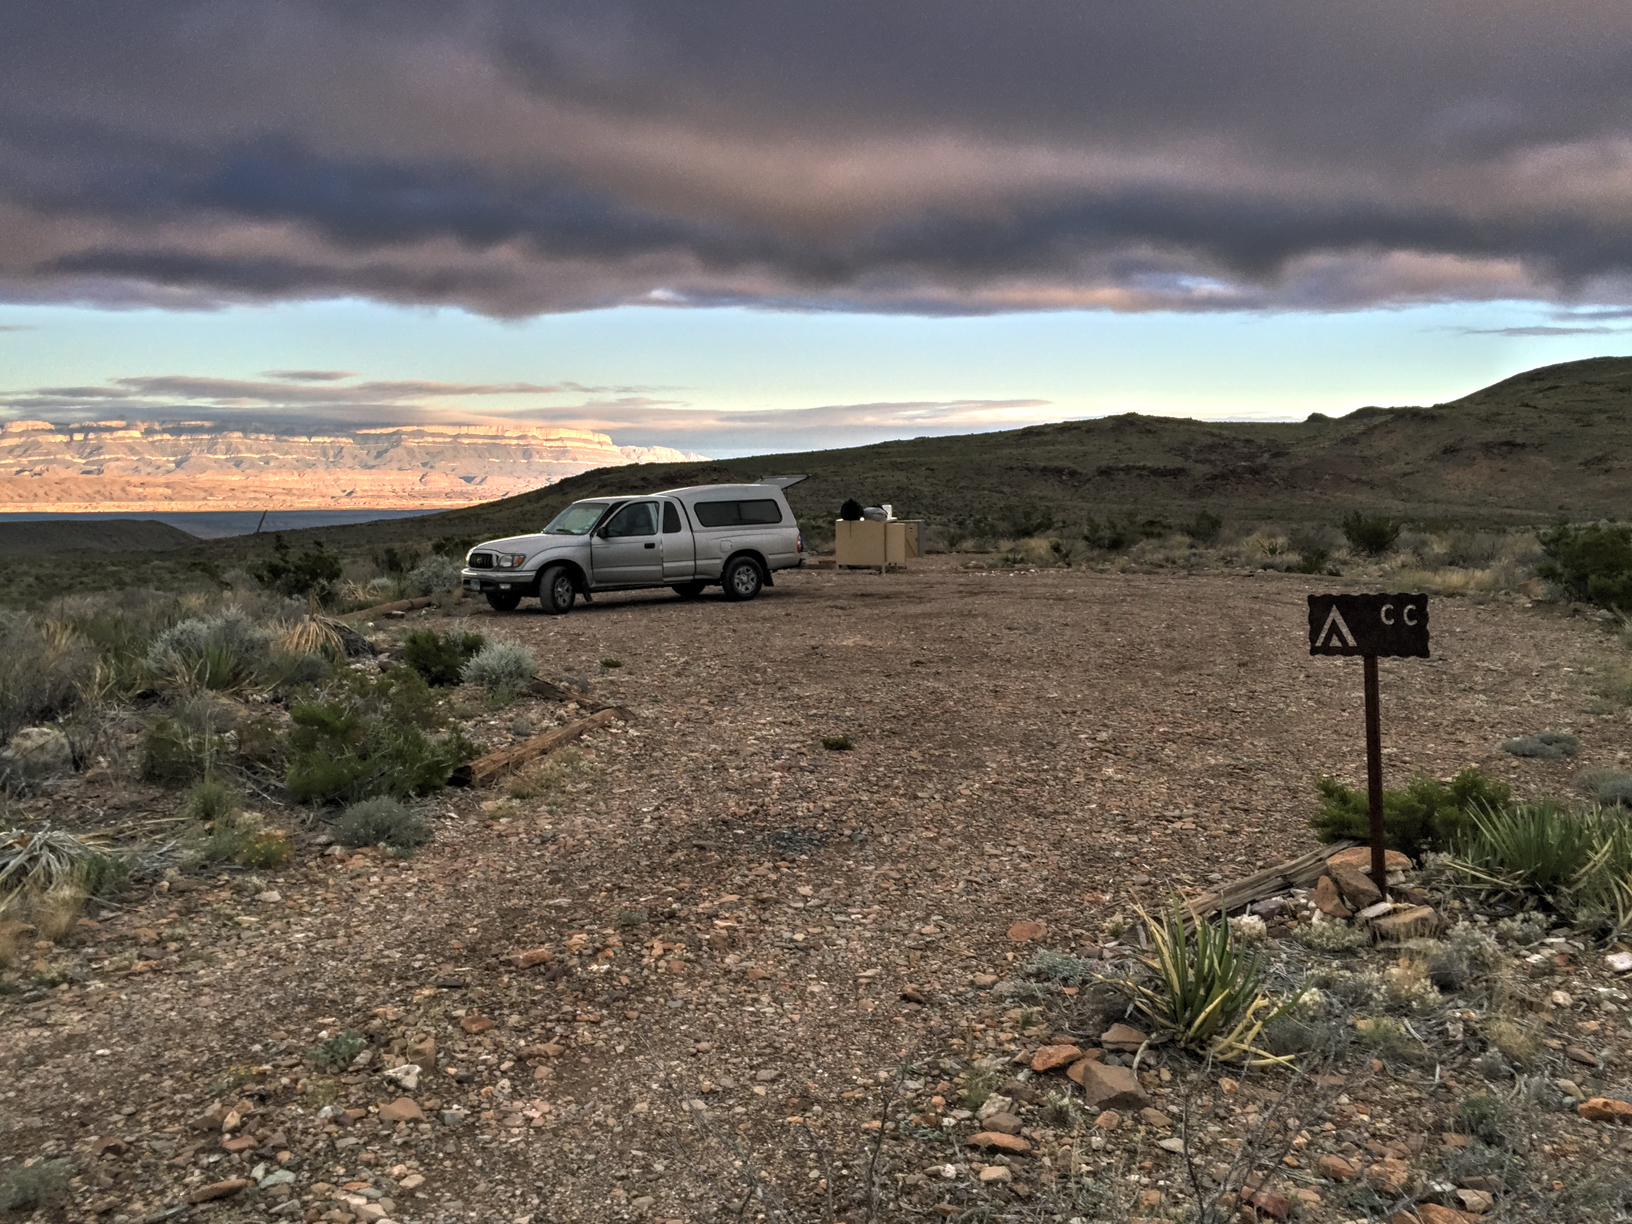 My truck at Chilicotal Camp Site, Big Bend National Park